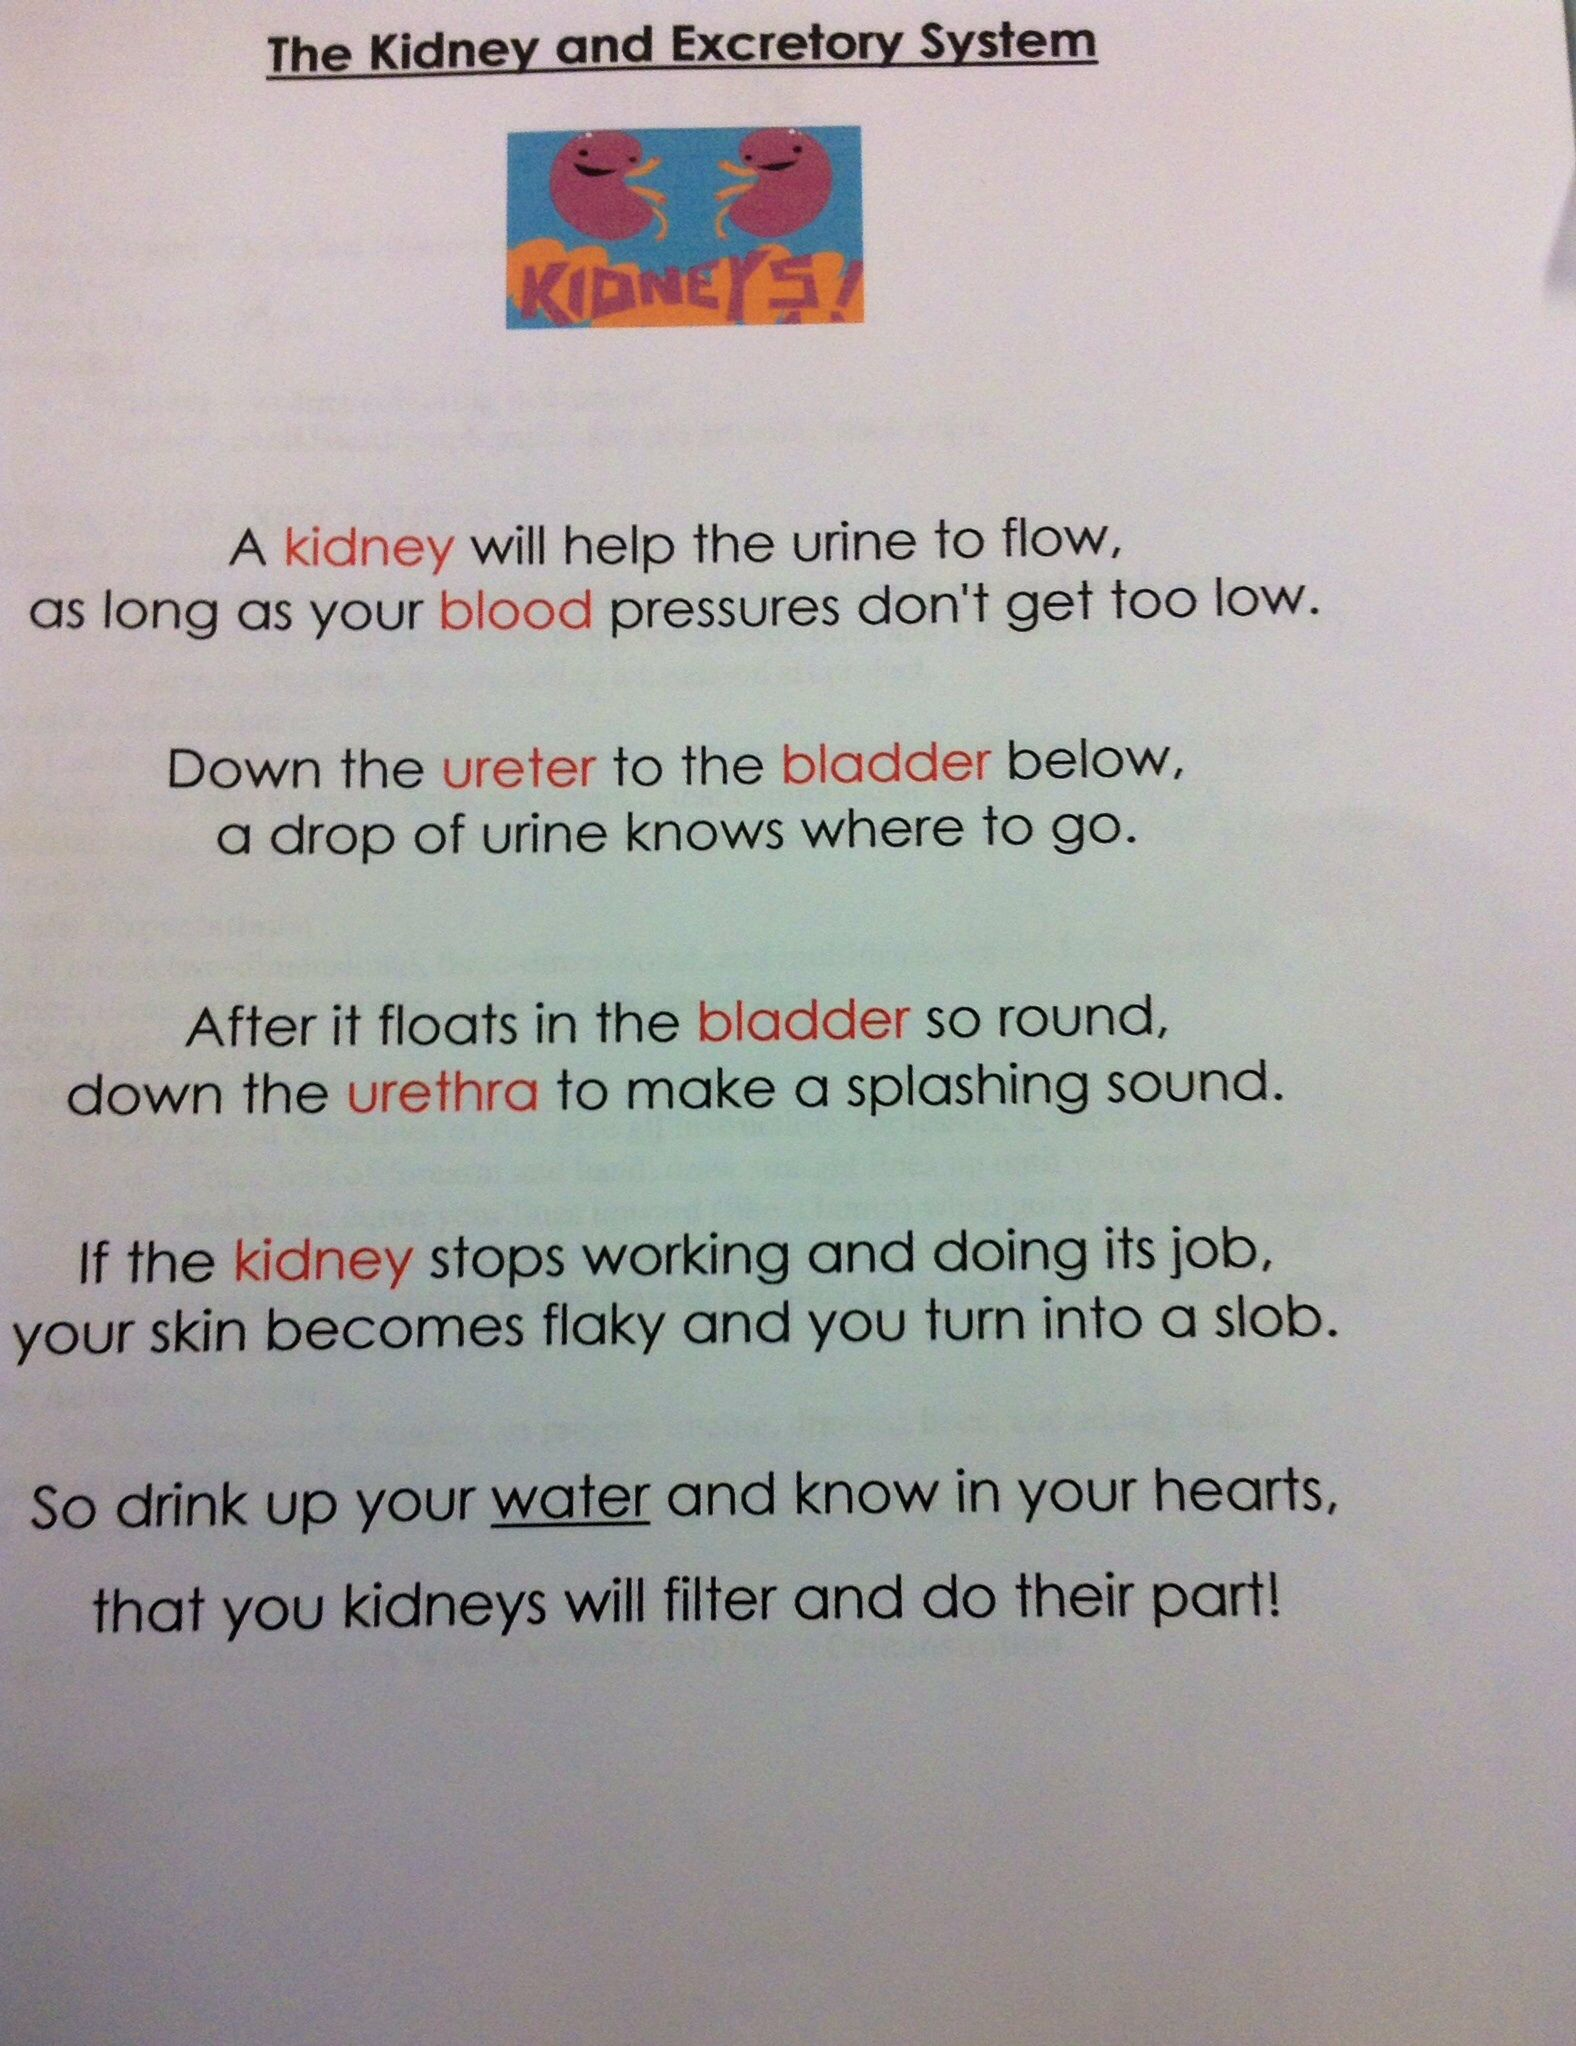 the kidney excretory system poem handout 5th grade activities pinterest body systems. Black Bedroom Furniture Sets. Home Design Ideas